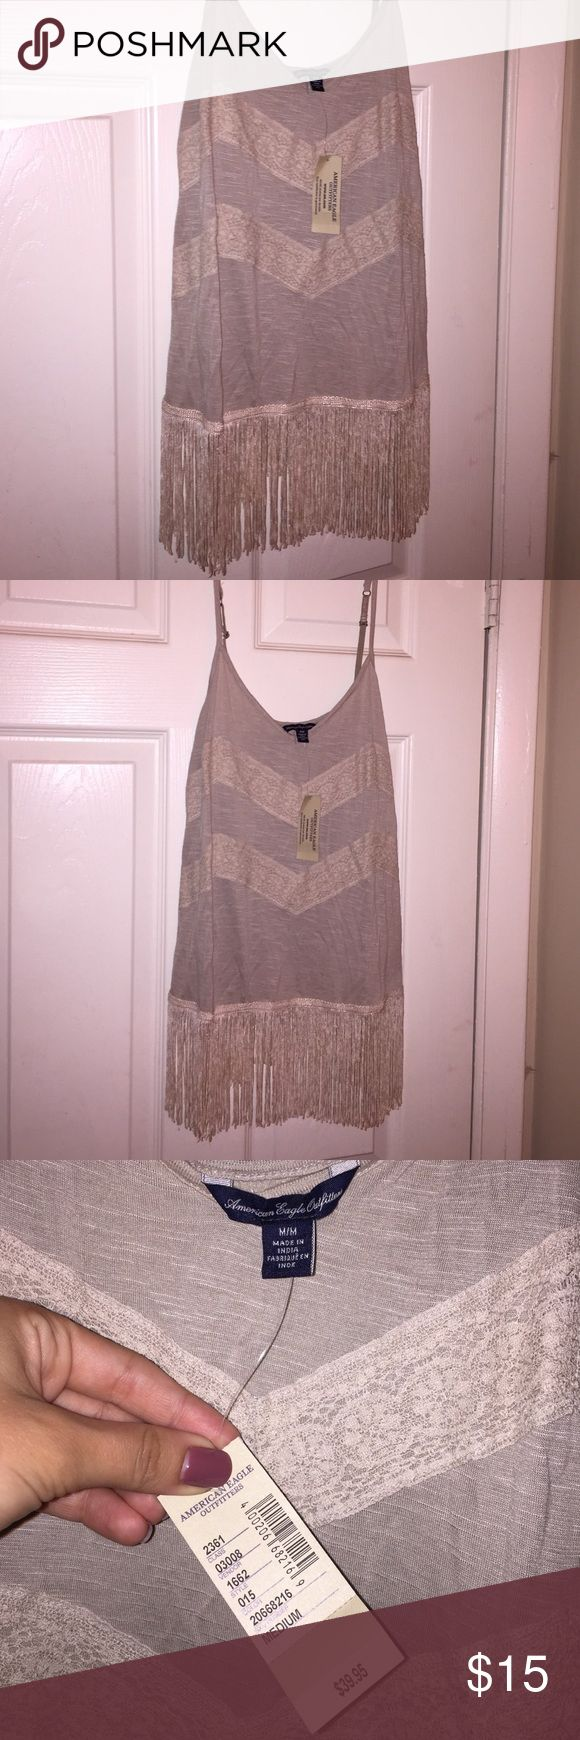 American Eagle fringe tank top NEW AE fringe tank top with adjustable spaghetti straps and lace detailing. Never before worn American Eagle Outfitters Tops Tank Tops